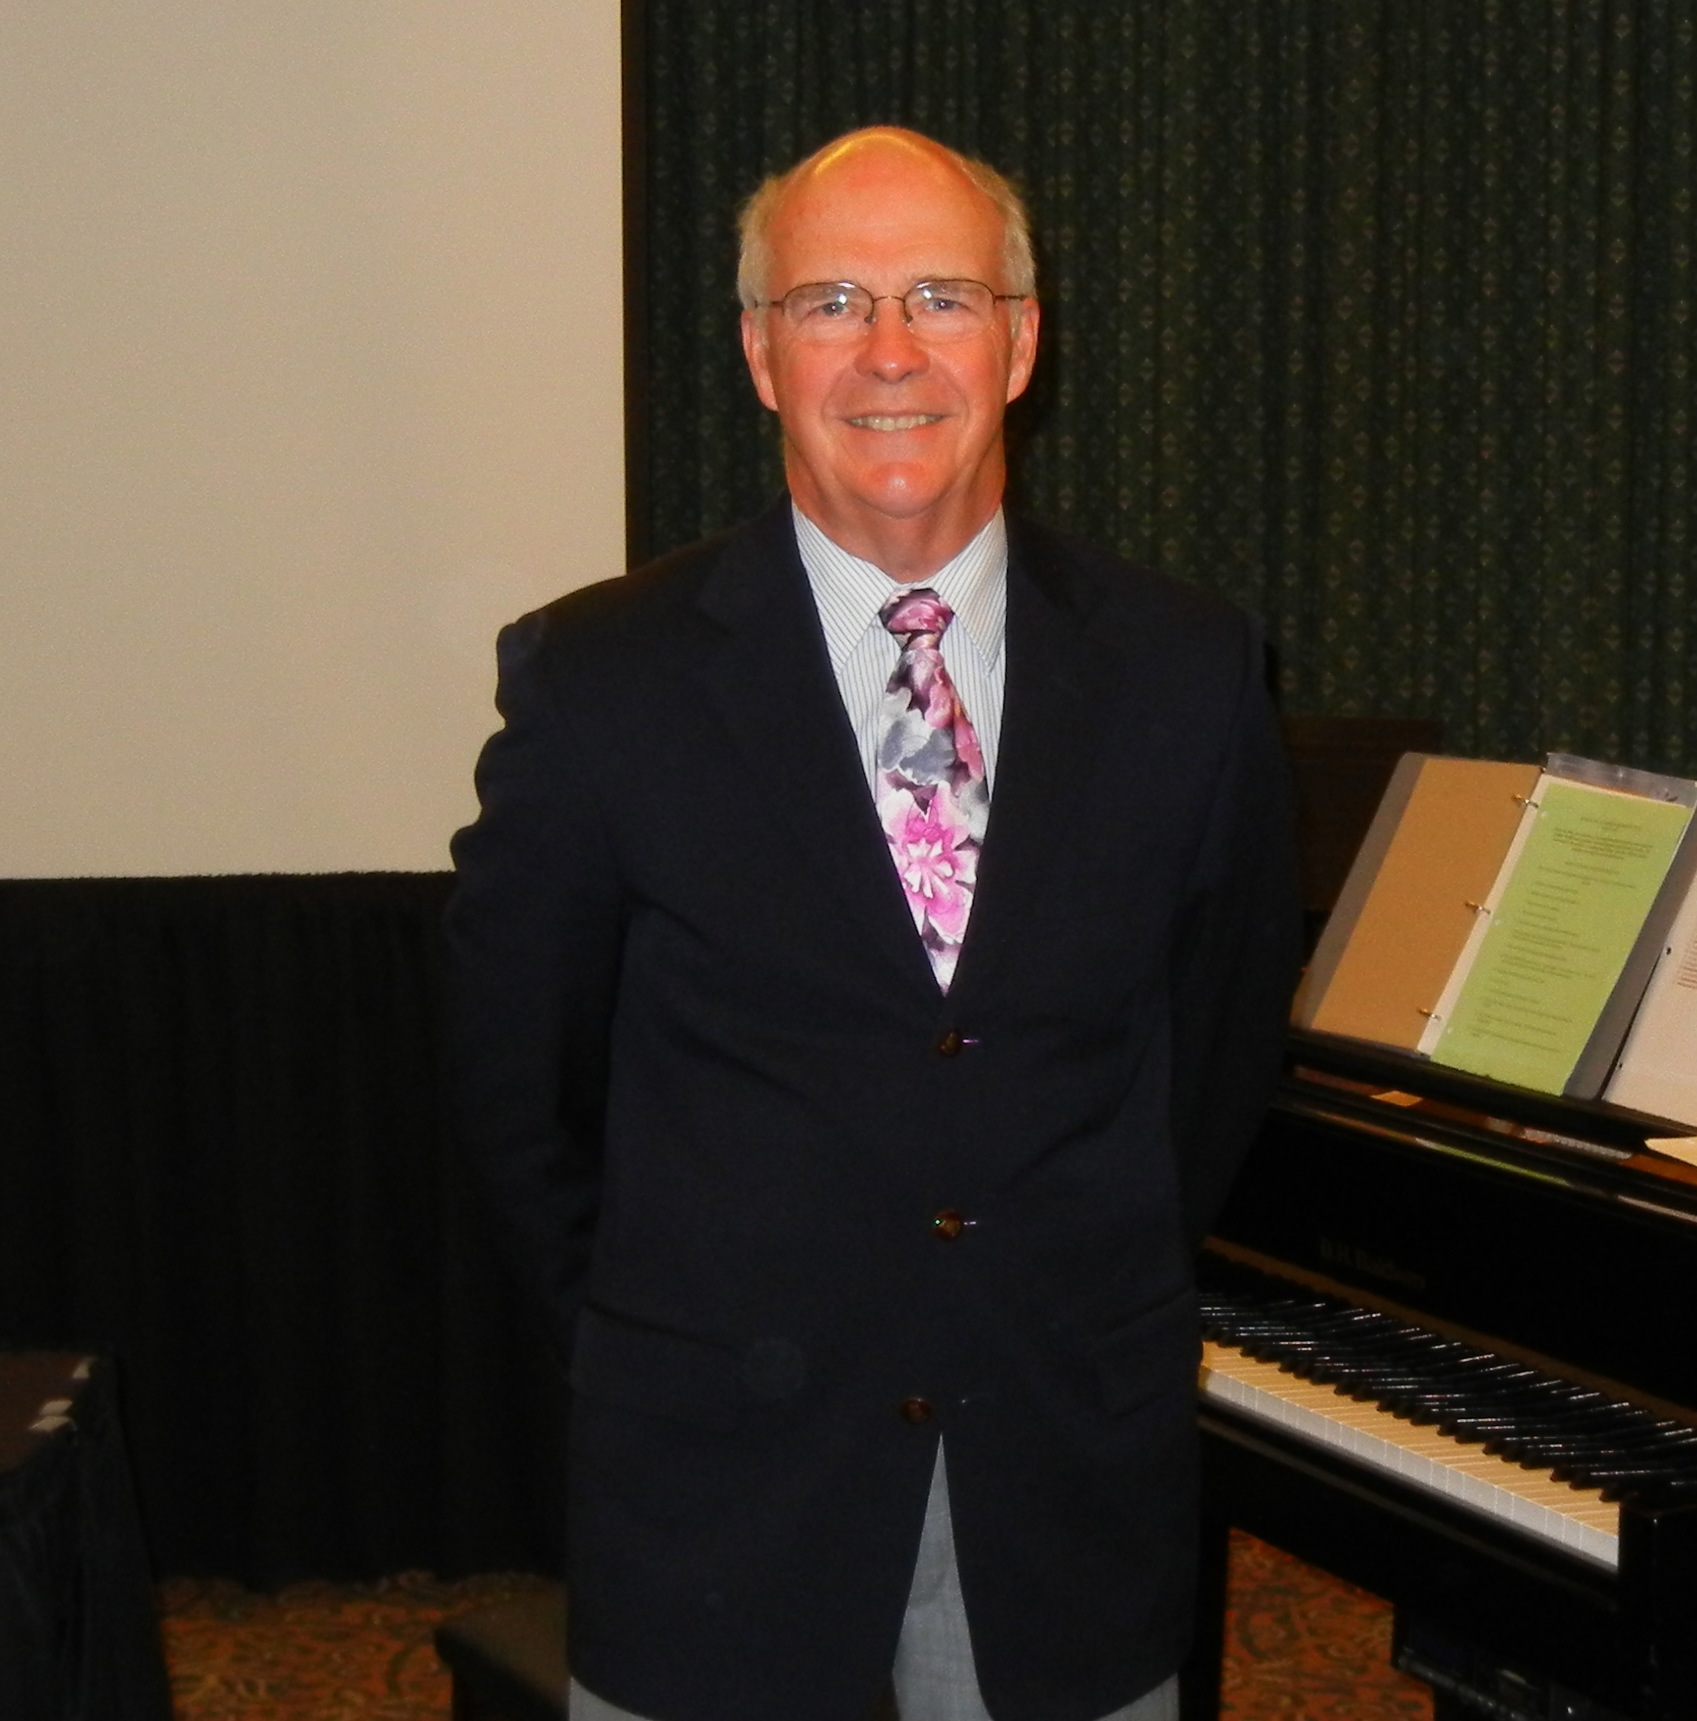 Robert Vandall presents a workshop at the 2012 Convention.